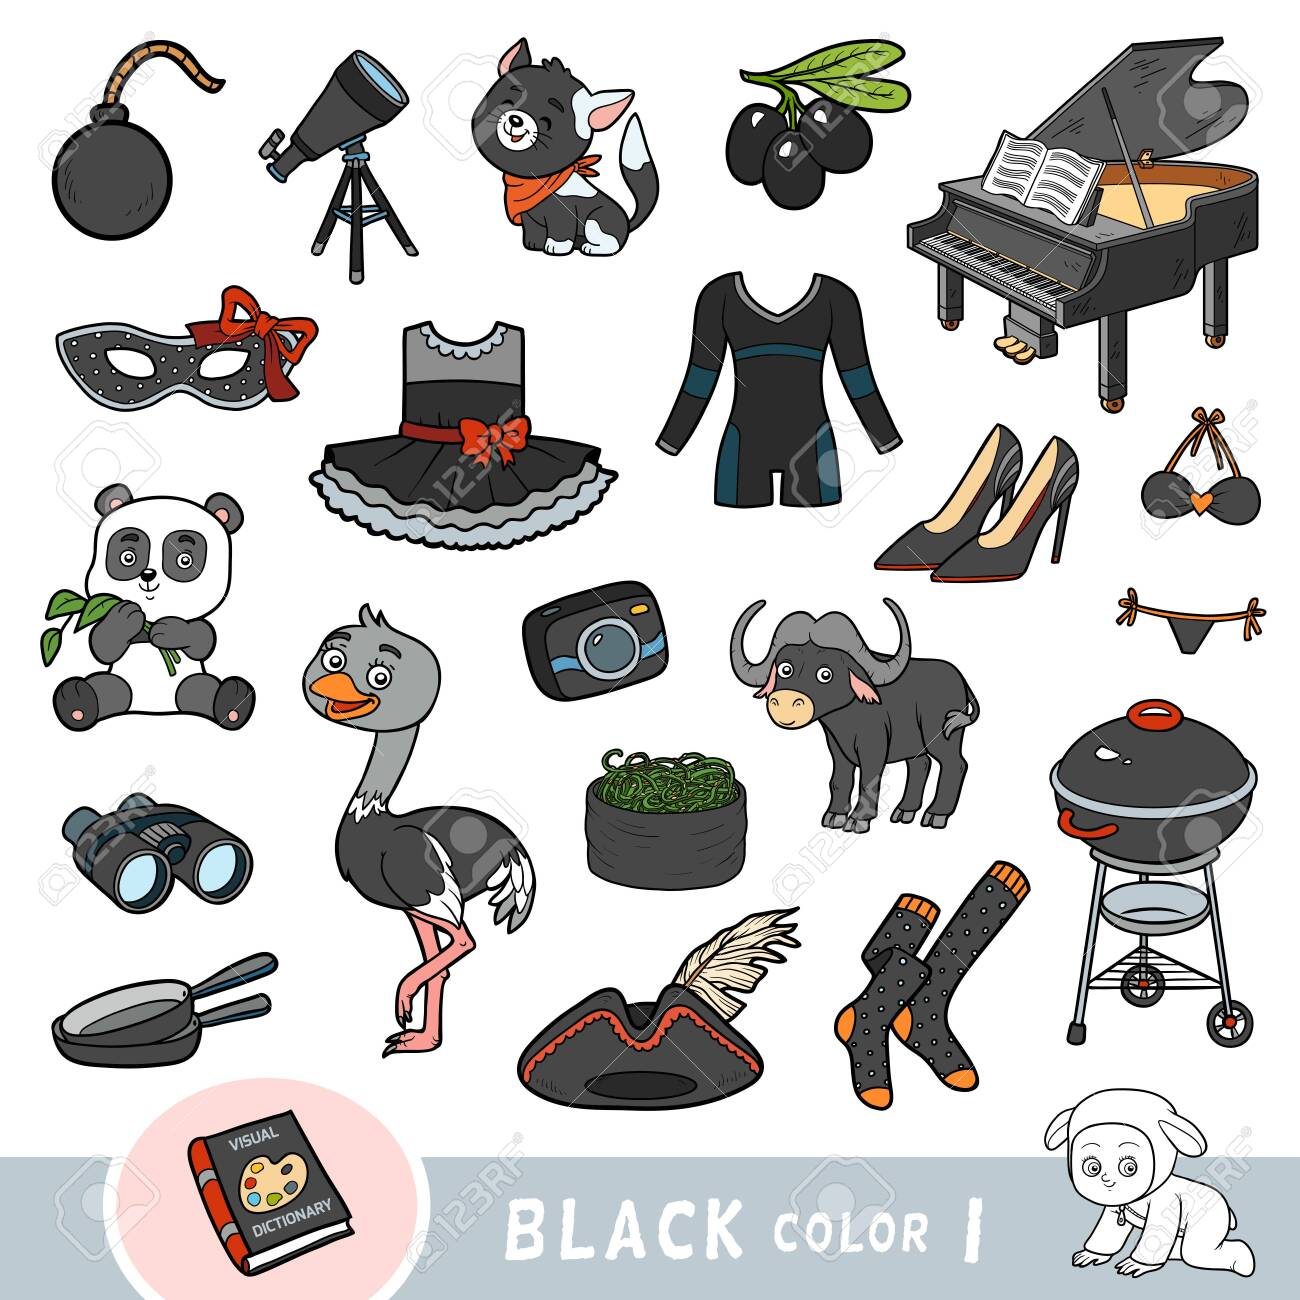 Colorful set of black color objects. Visual dictionary for children about the basic colors. Cartoon images to learning in kindergarten and preschool - 136781417